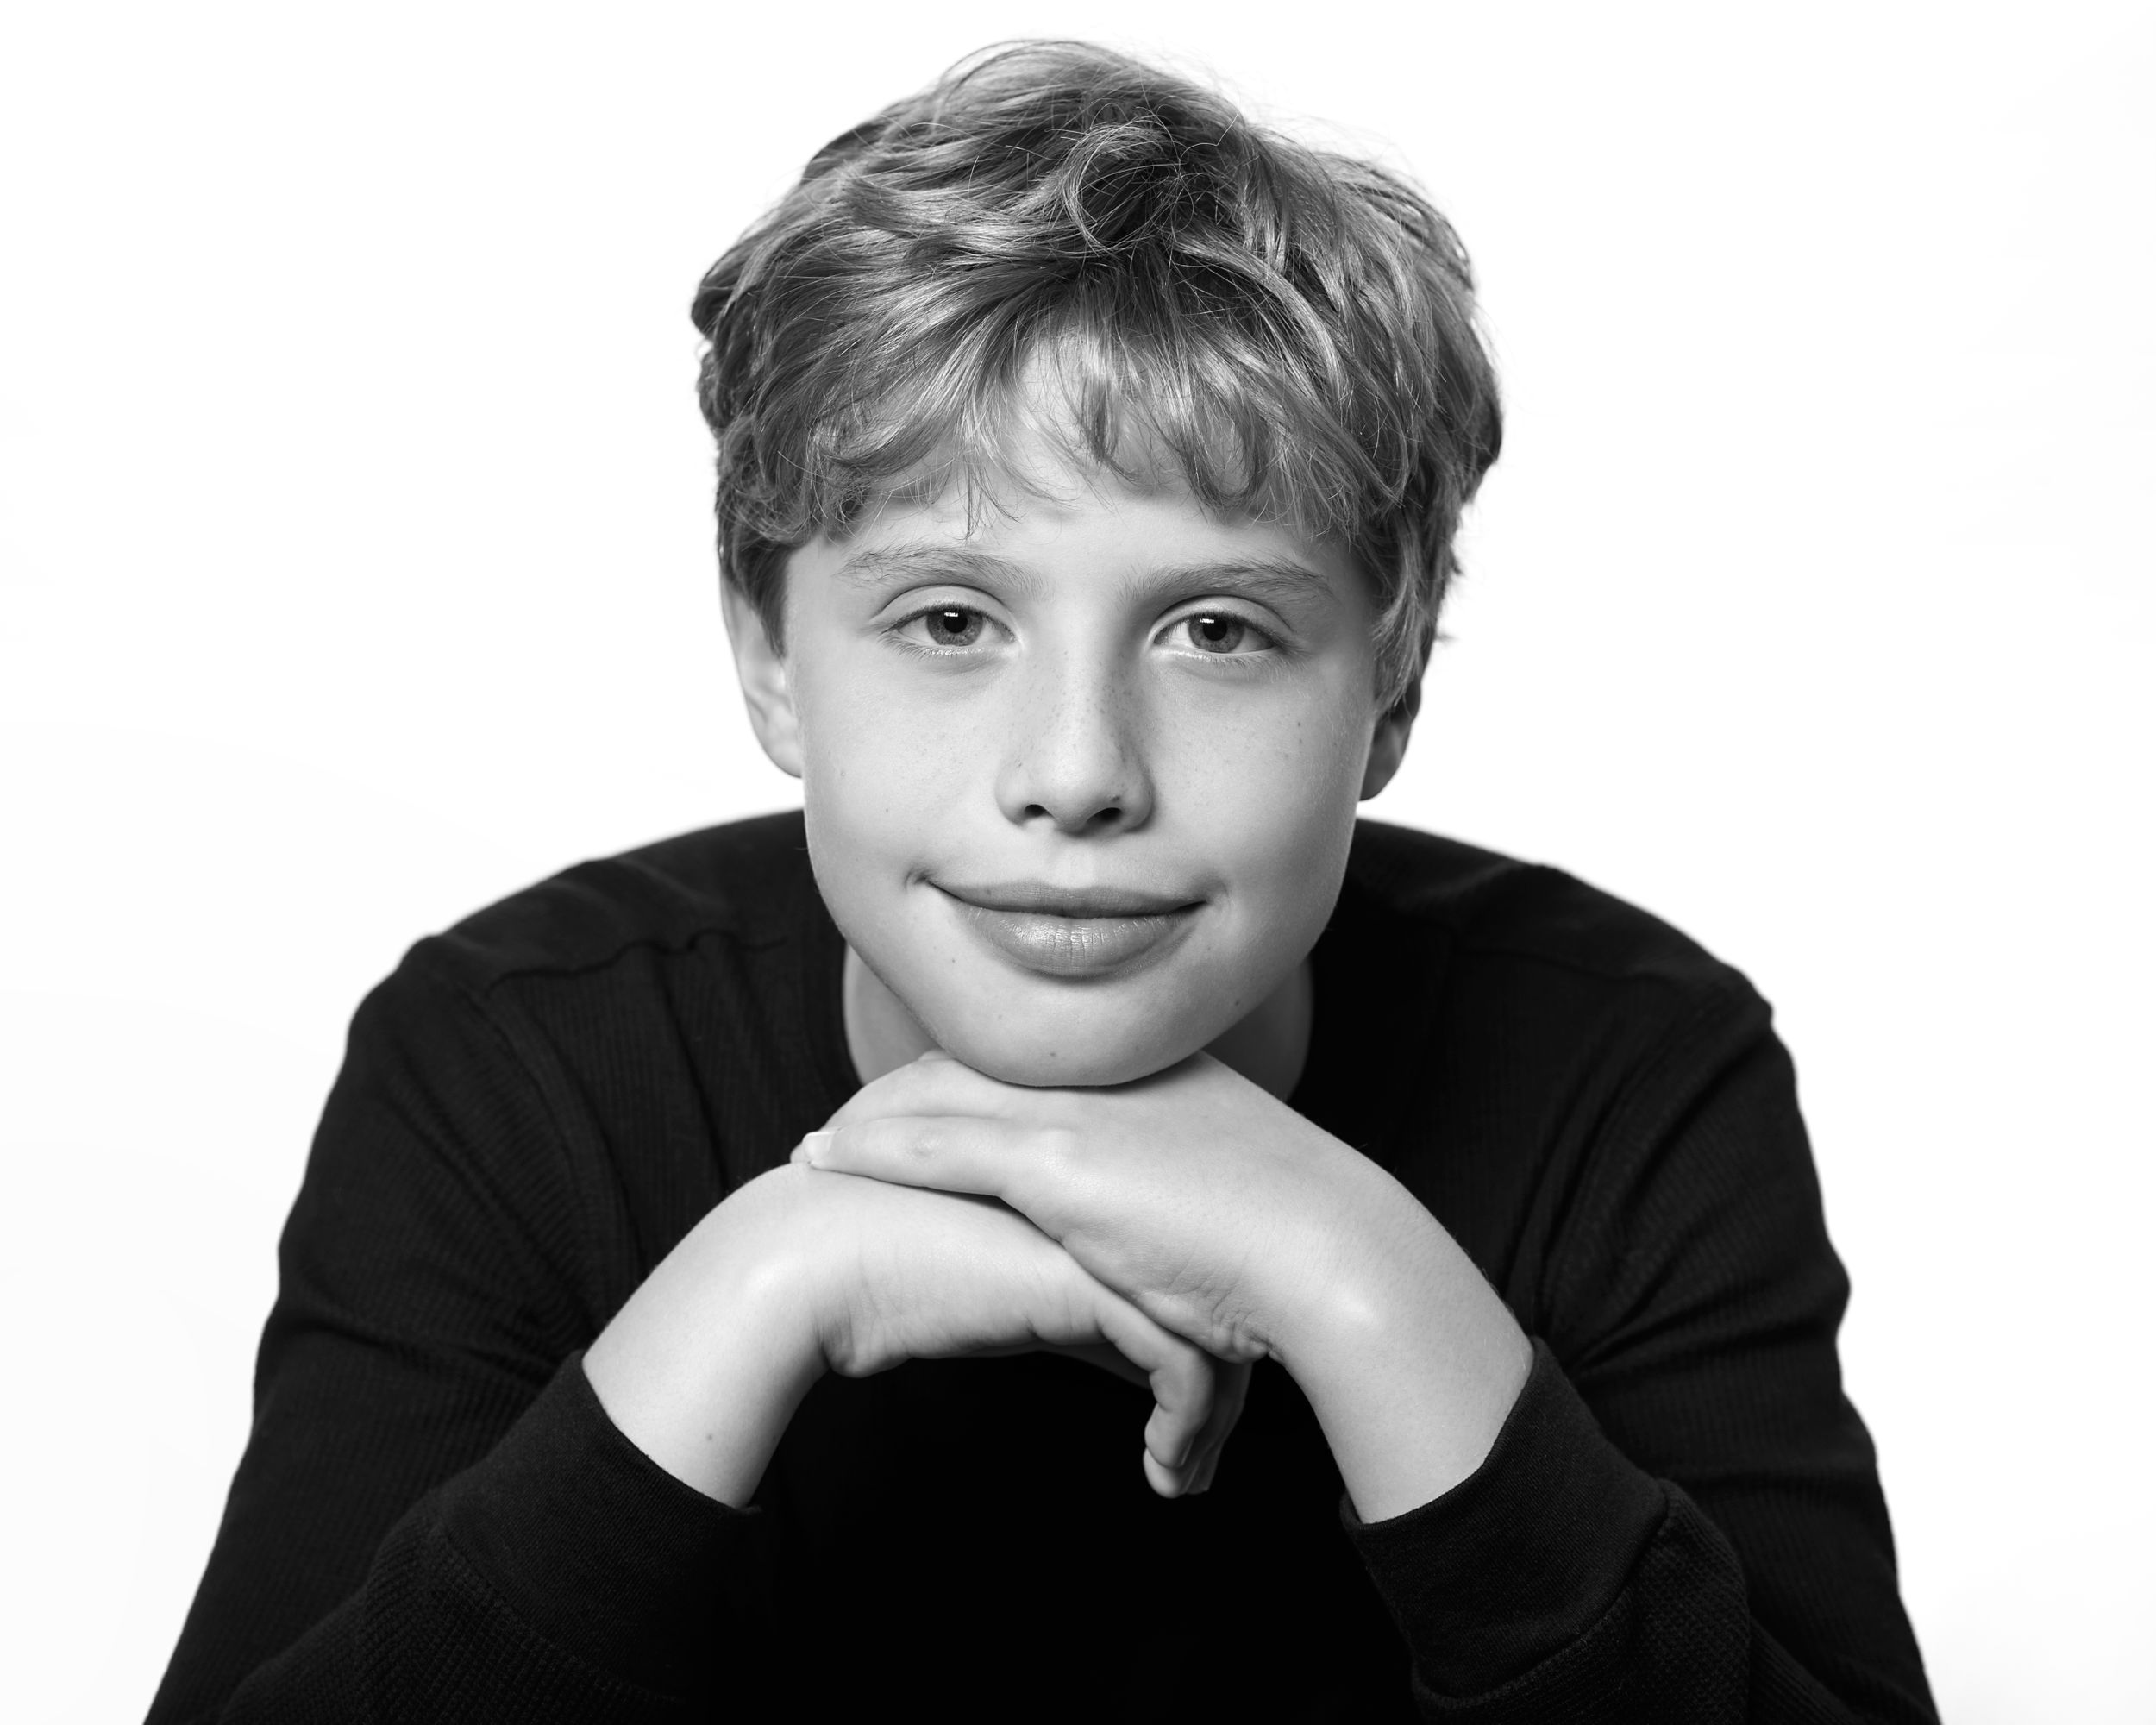 Black & white male child model headshot